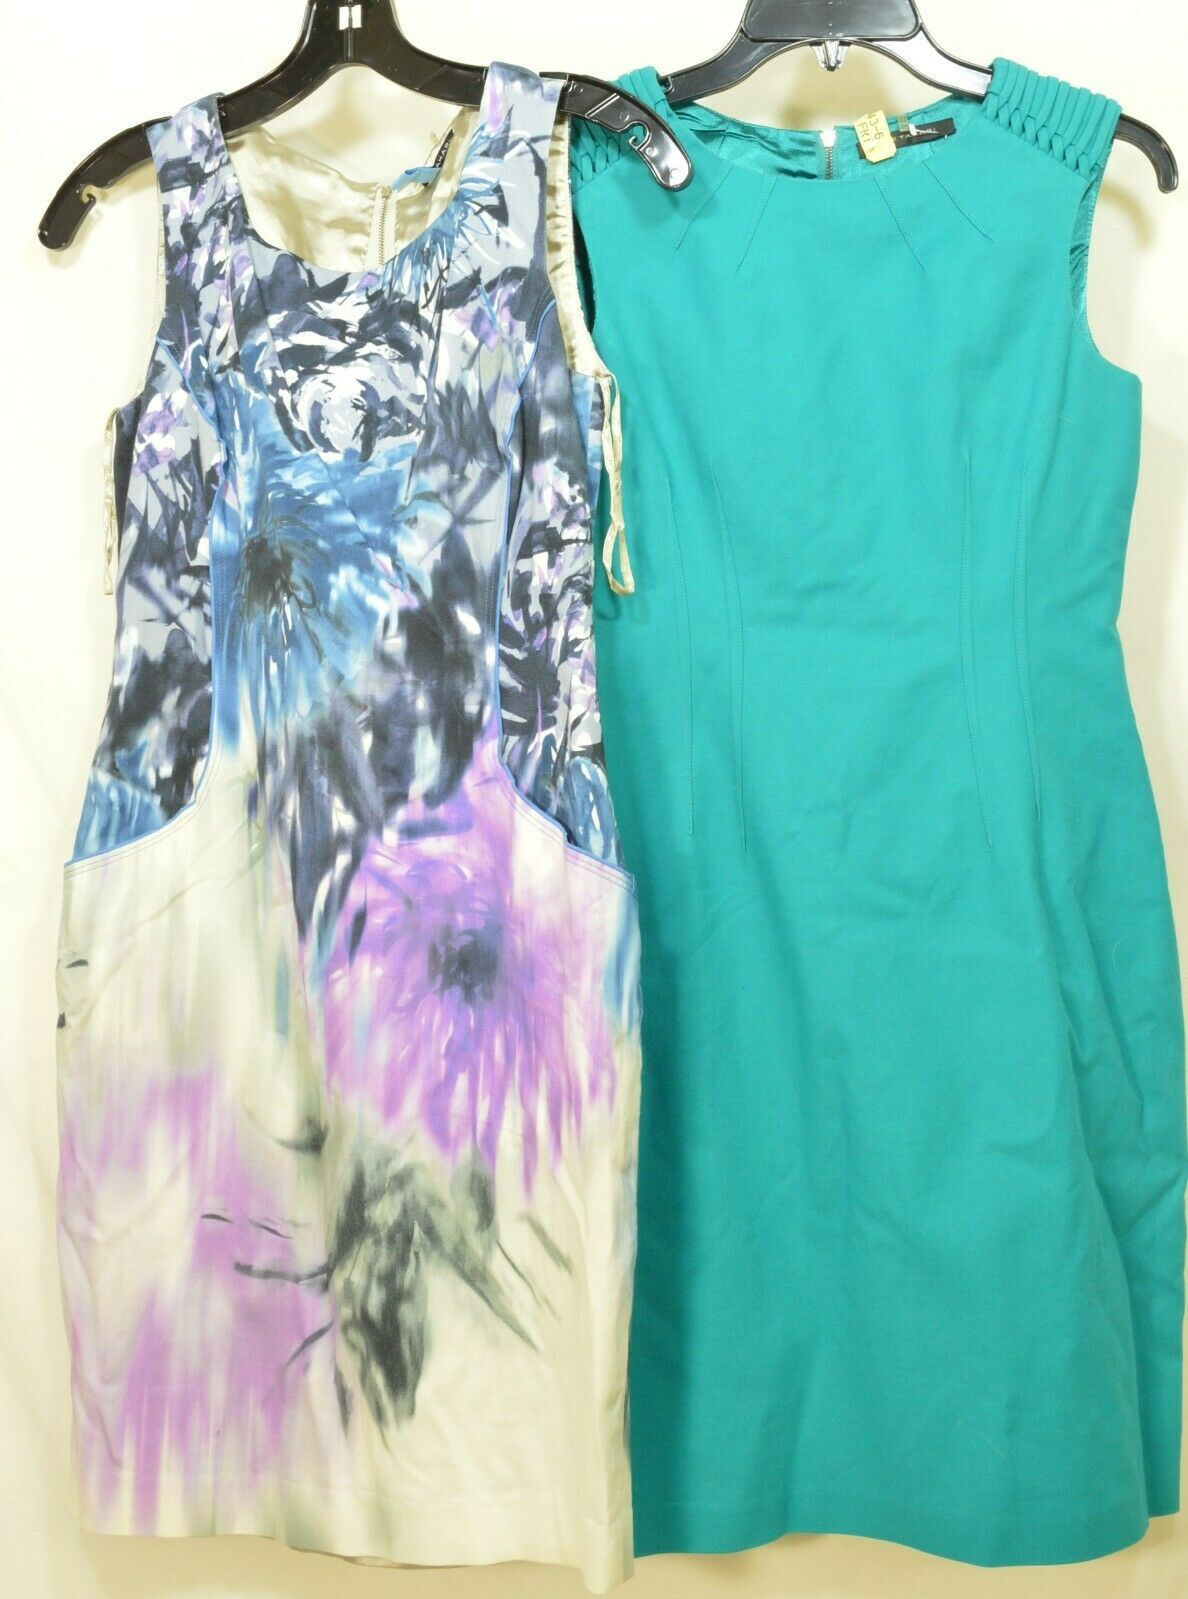 Elie Tahari dress SZ 2 LOT of 2  1 turquoise 1 floral sheath career chic lined